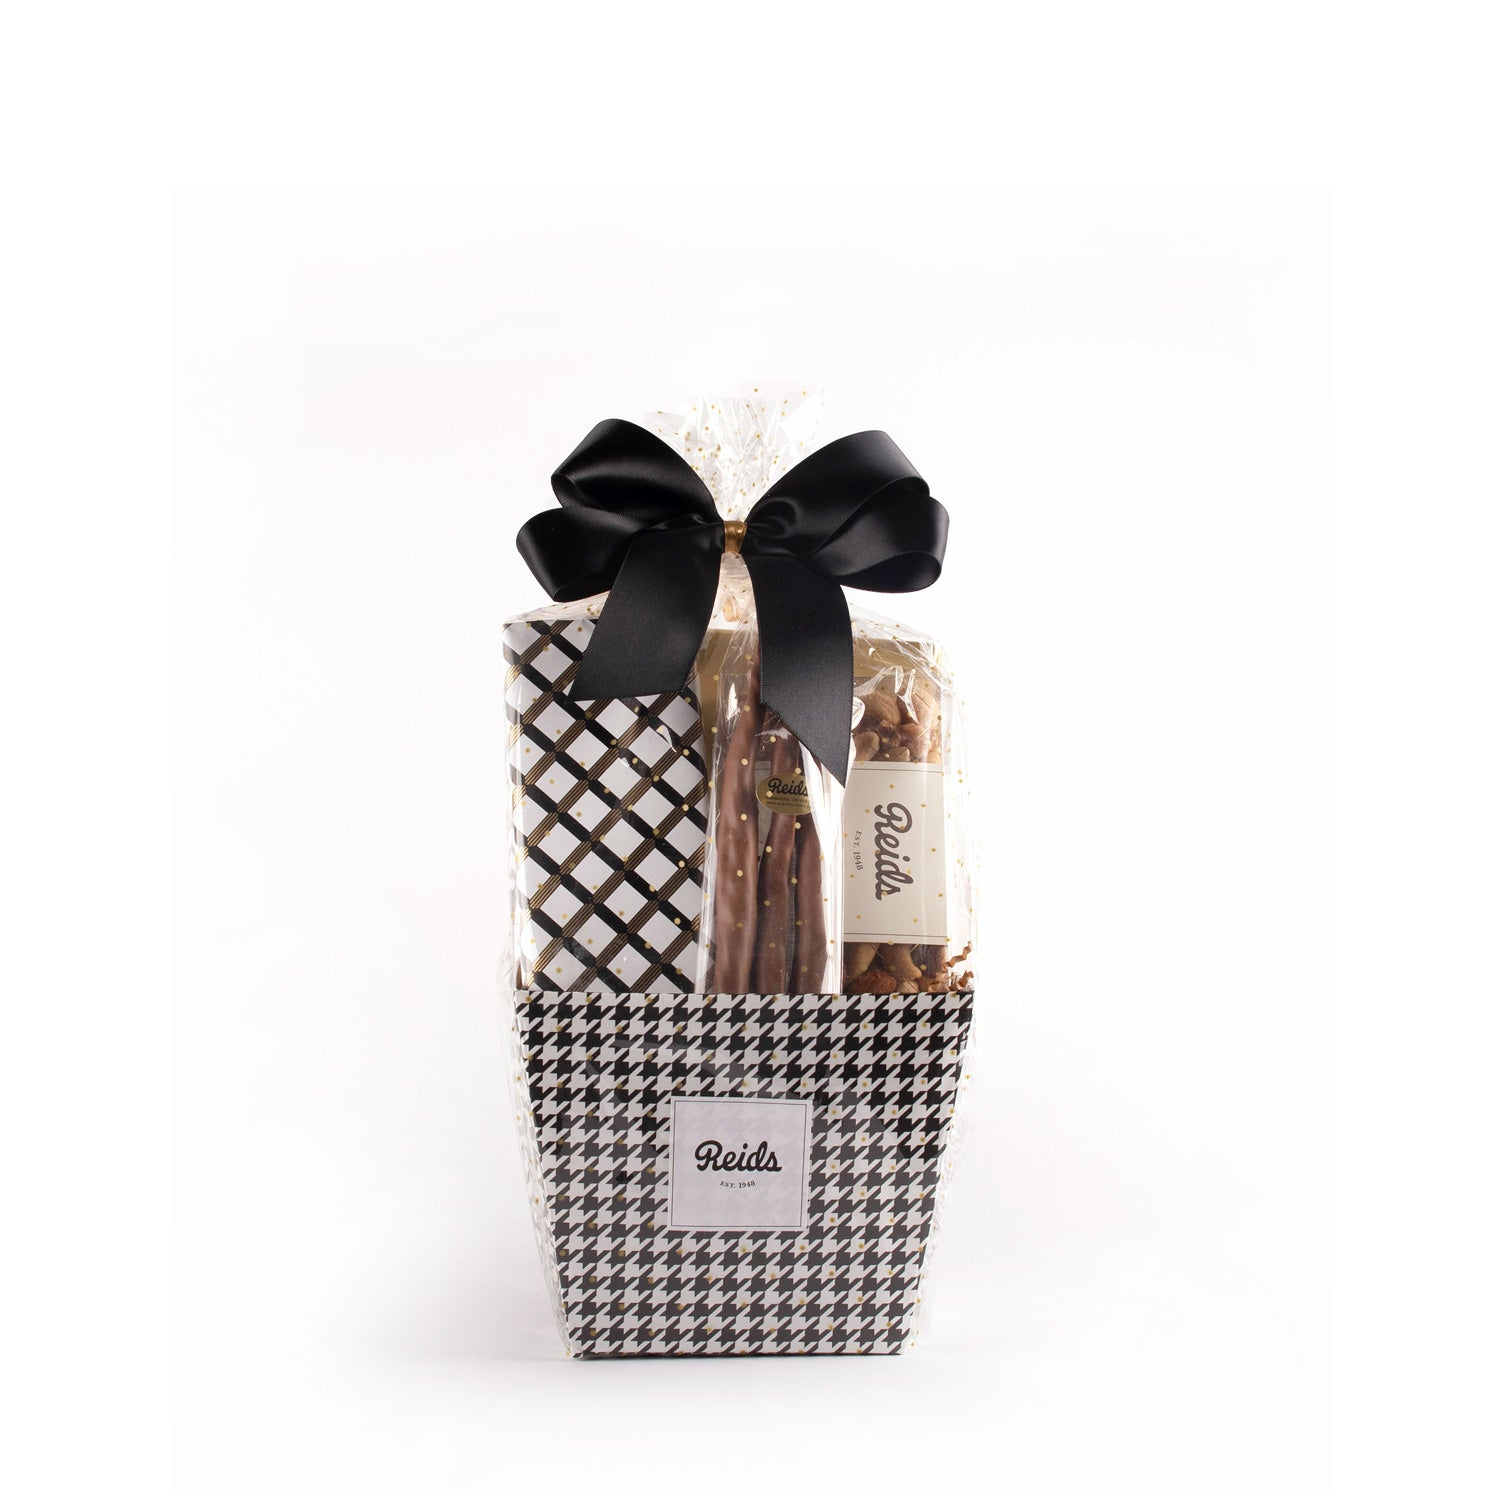 The small basket comes in a black and white houndstooth basket. Wrapped cellophane and tied with a black stain bow.